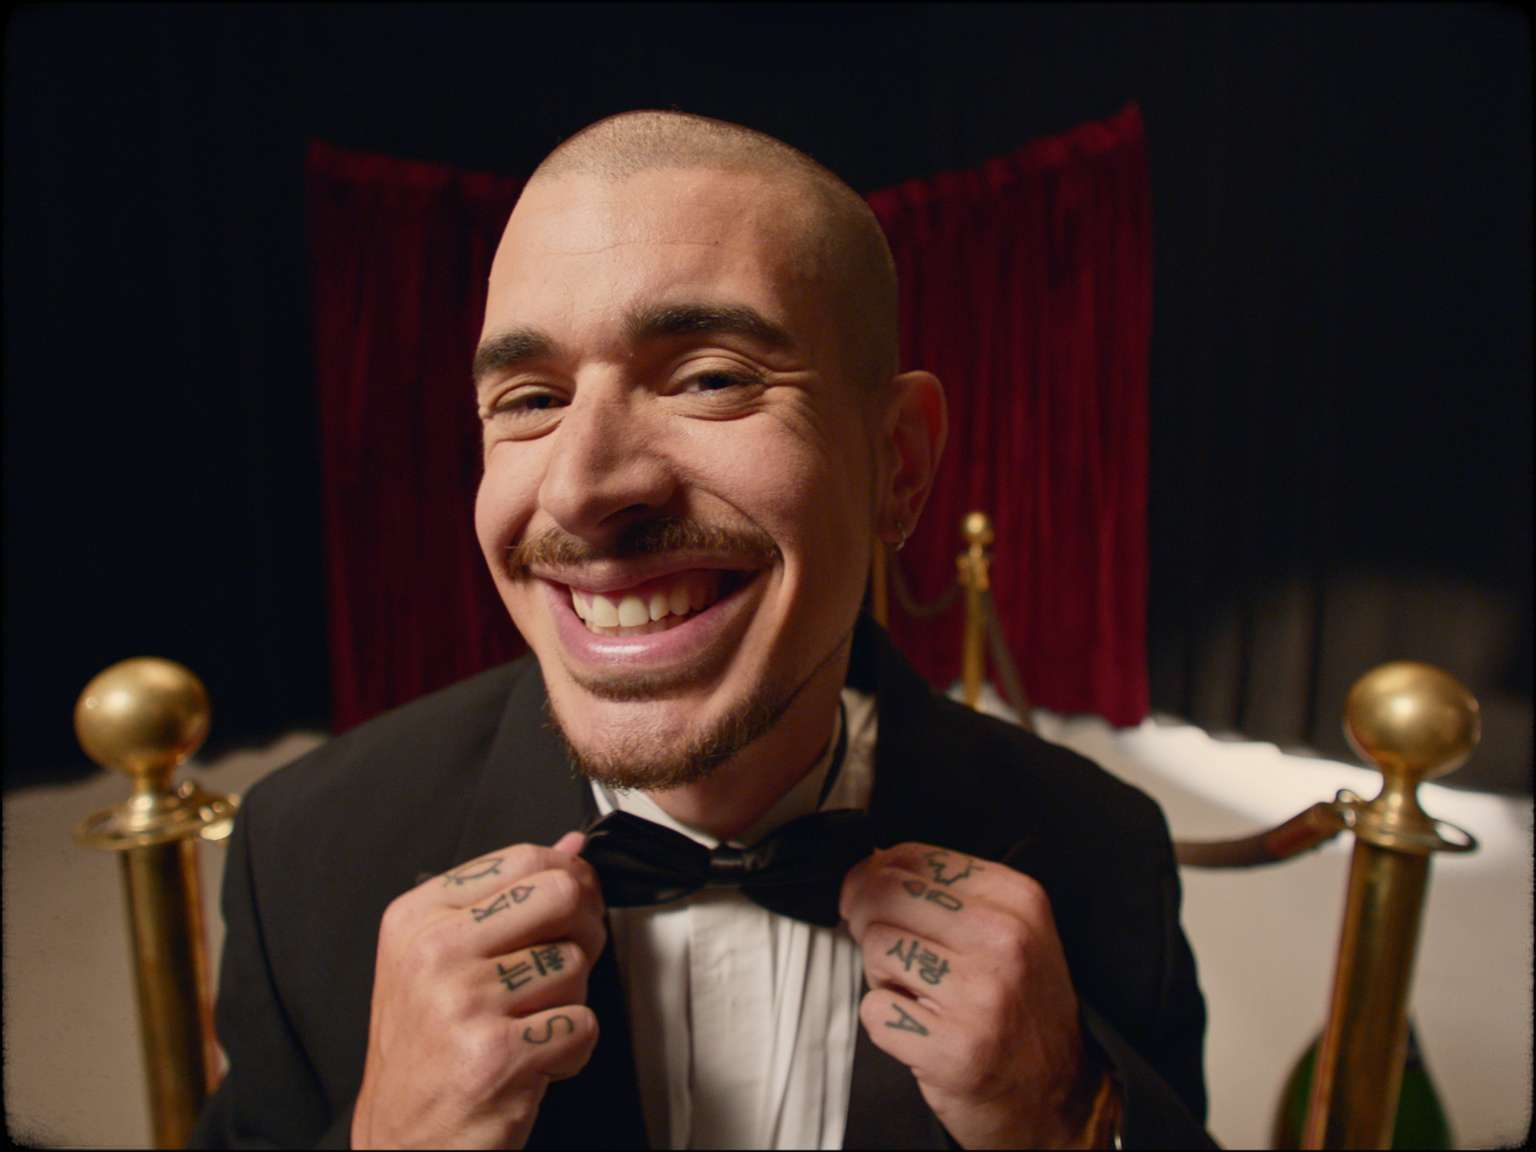 rapper Koriass wearing tuxedo and giving huge smile in music video 5 à 7 filmed by Vincent Ruel-Cote from Les Gamins with 7ieme Ciel Records